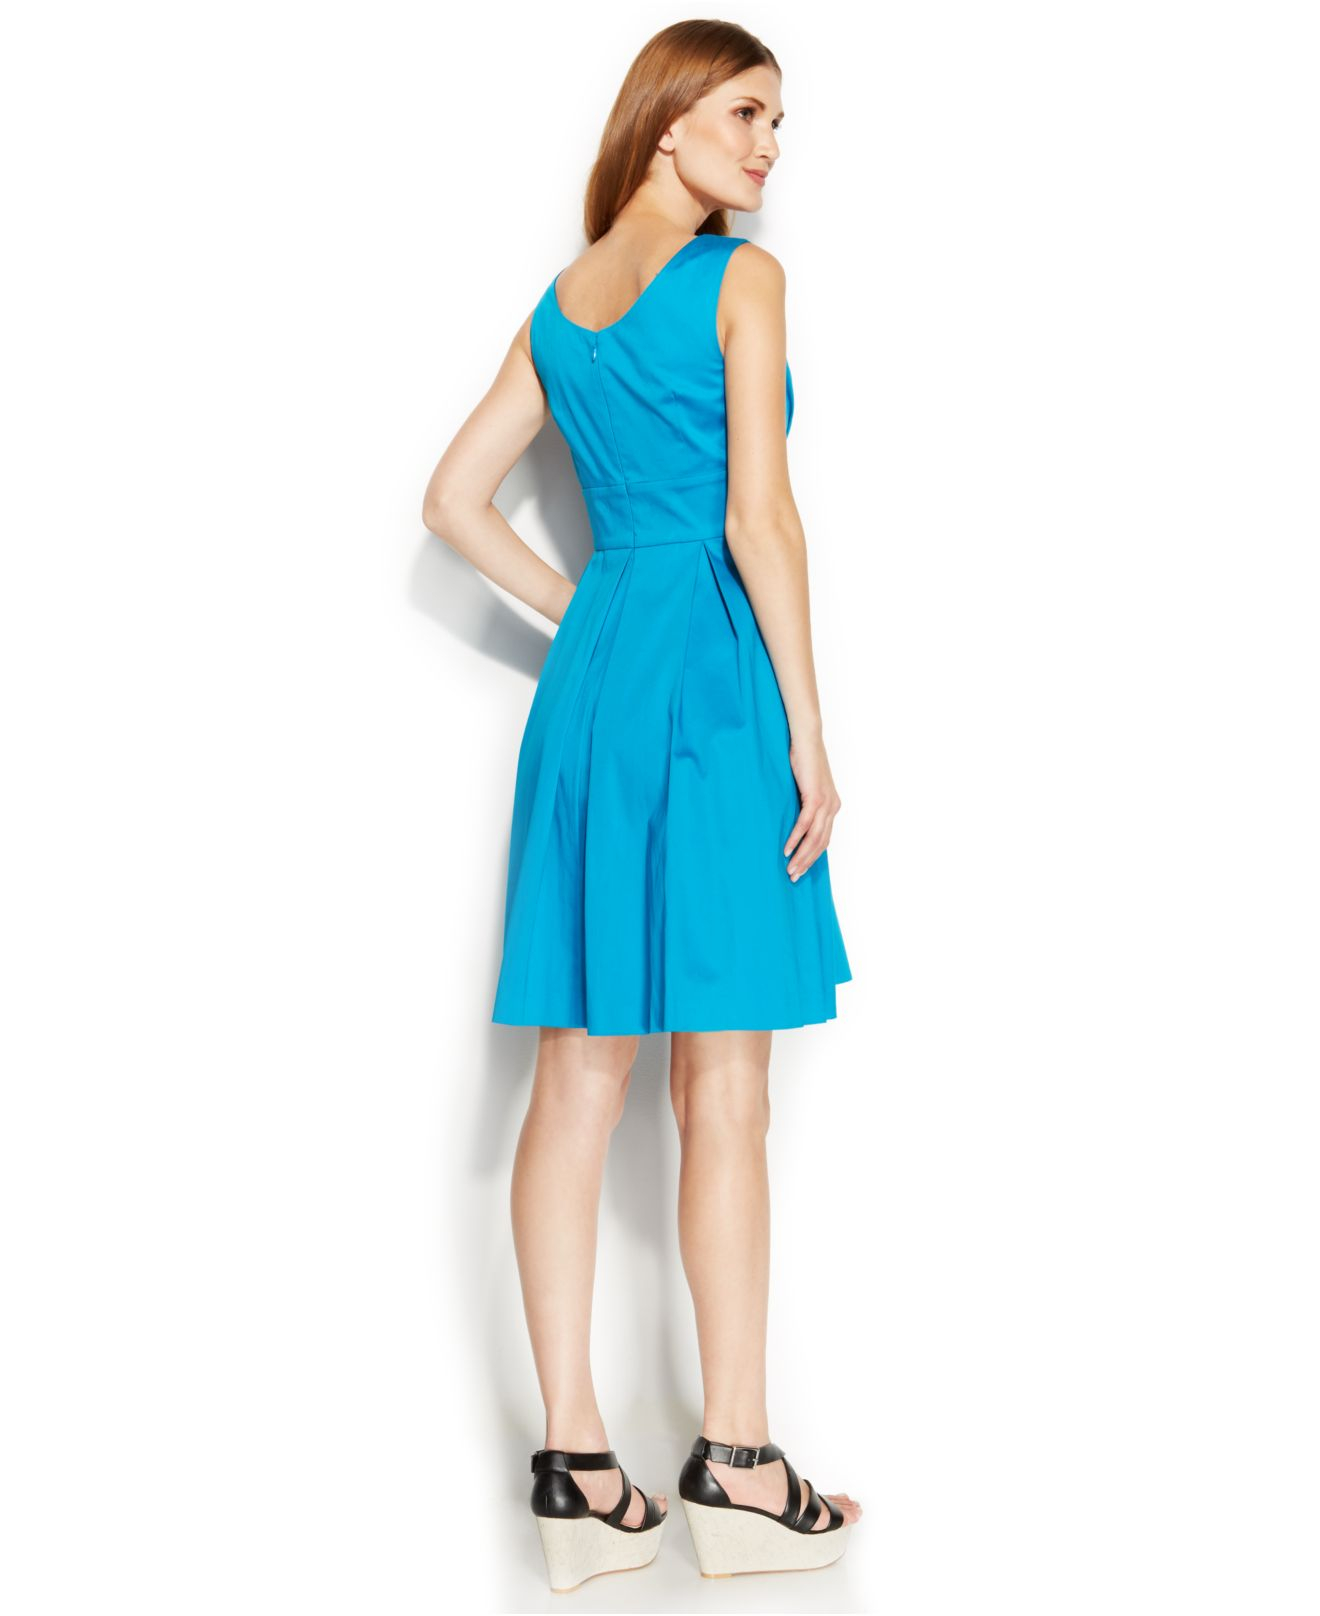 3ccaaae39c4f1a Lyst - Calvin Klein Sleeveless Pleated Scoop-Neck Dress in Blue